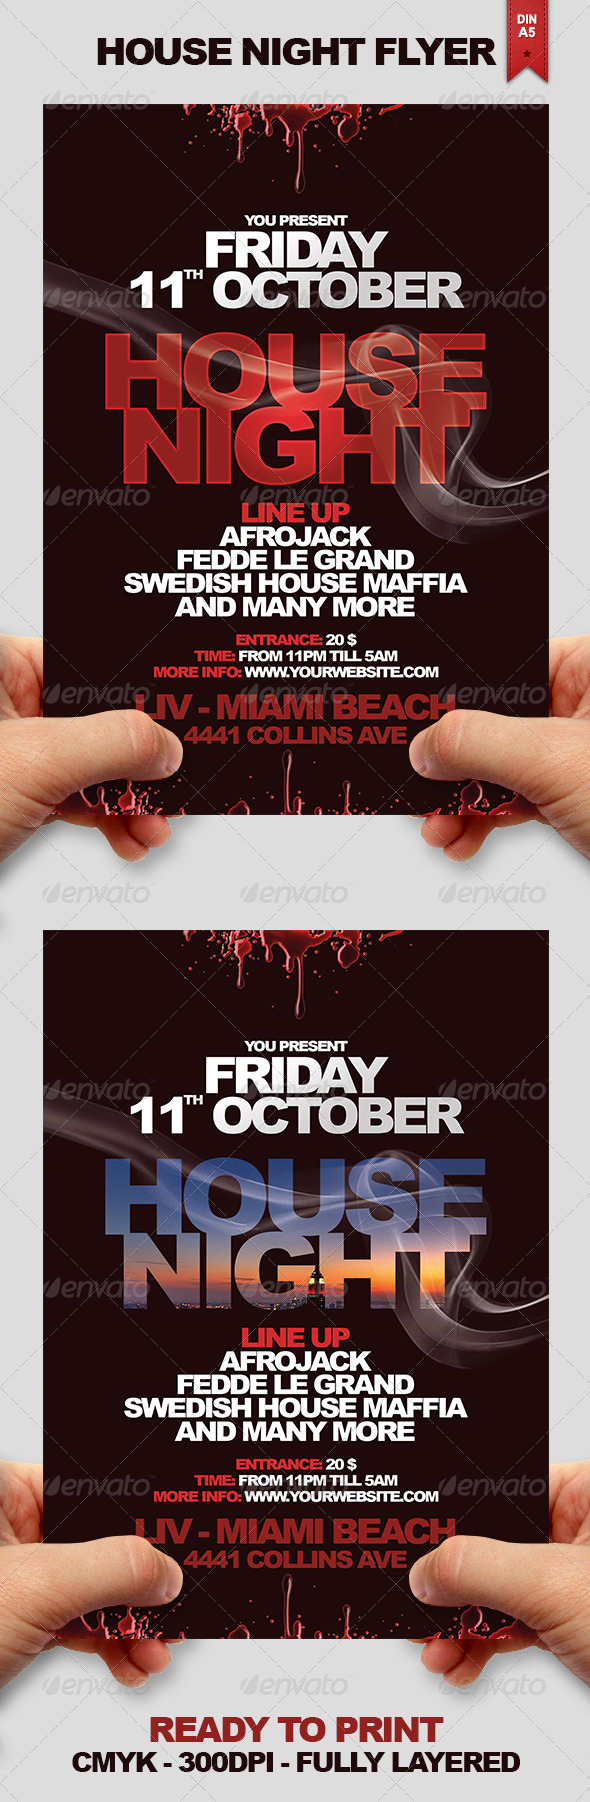 House Night Flyer - Events Flyers